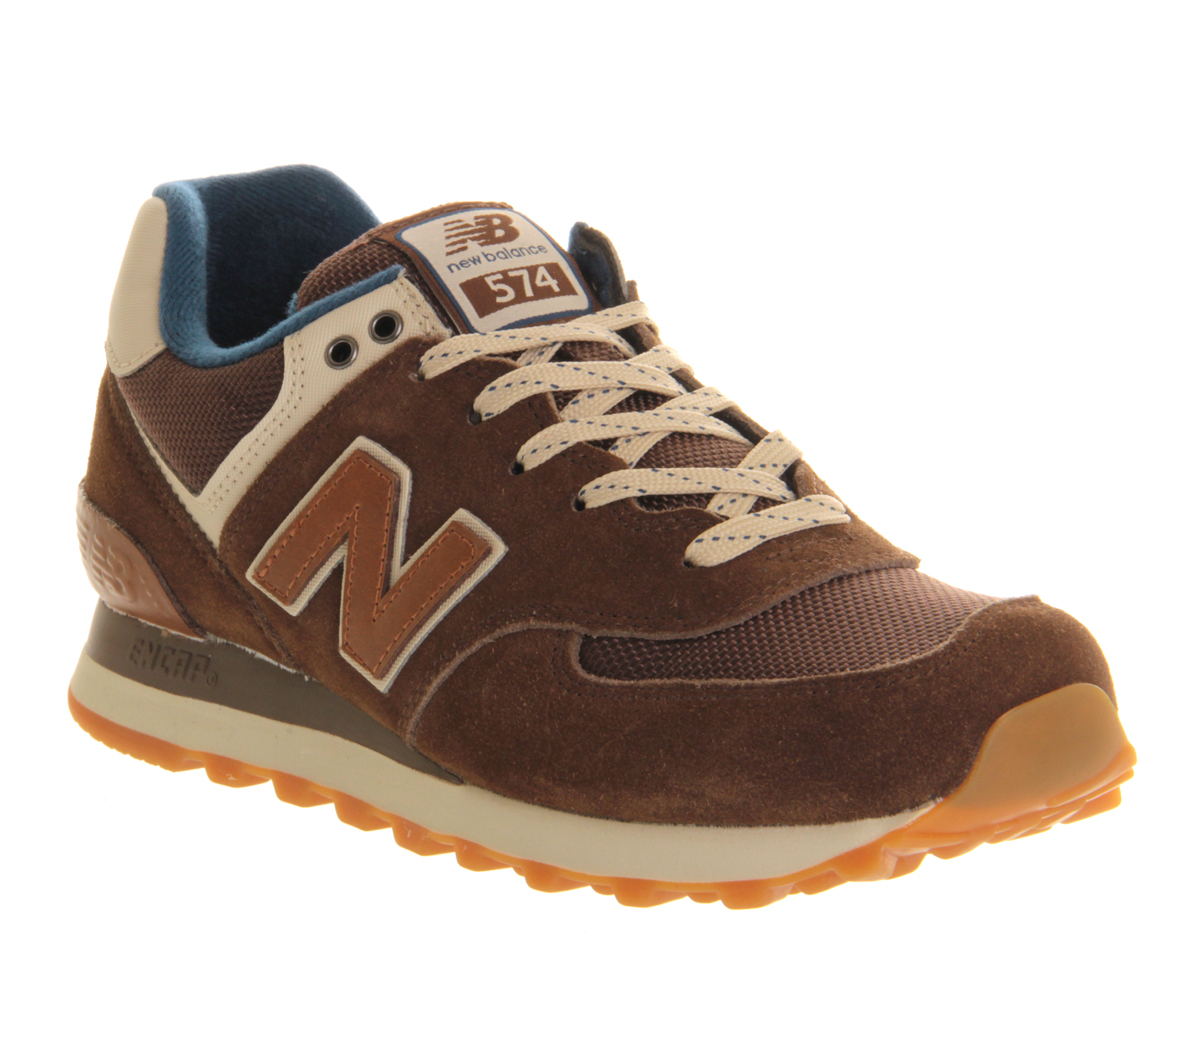 new balance new balance m574 brown navy trainers shoes ebay. Black Bedroom Furniture Sets. Home Design Ideas